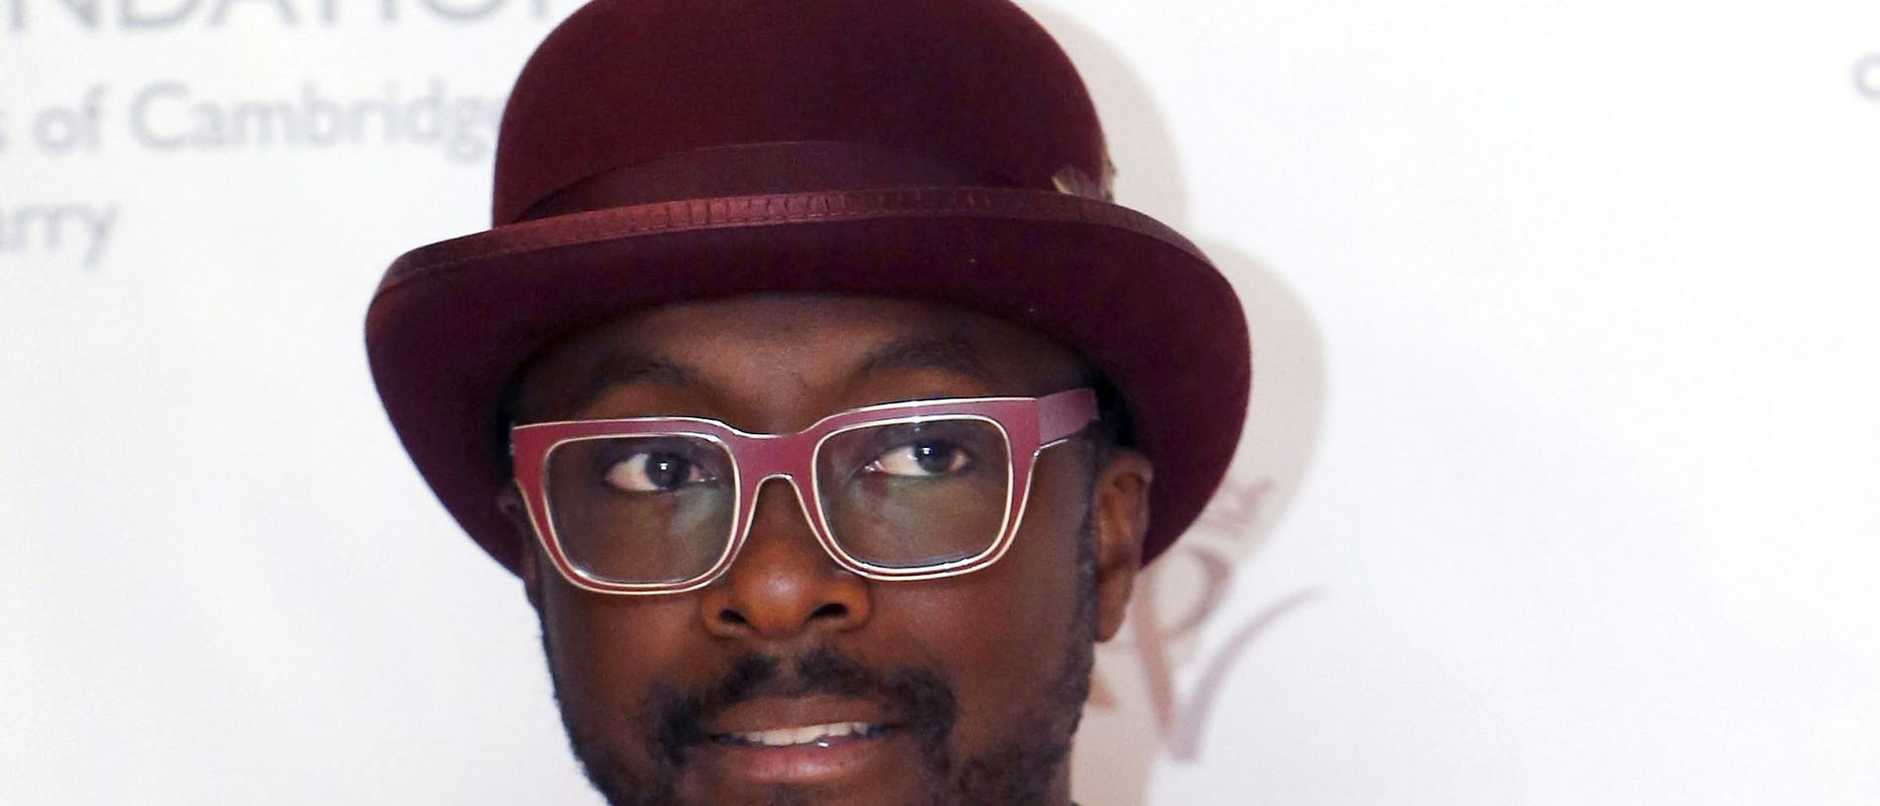 Hip hop icon will.i.am has accused an experienced Qantas flight attendant of racism after an incident on a flight where police were called.